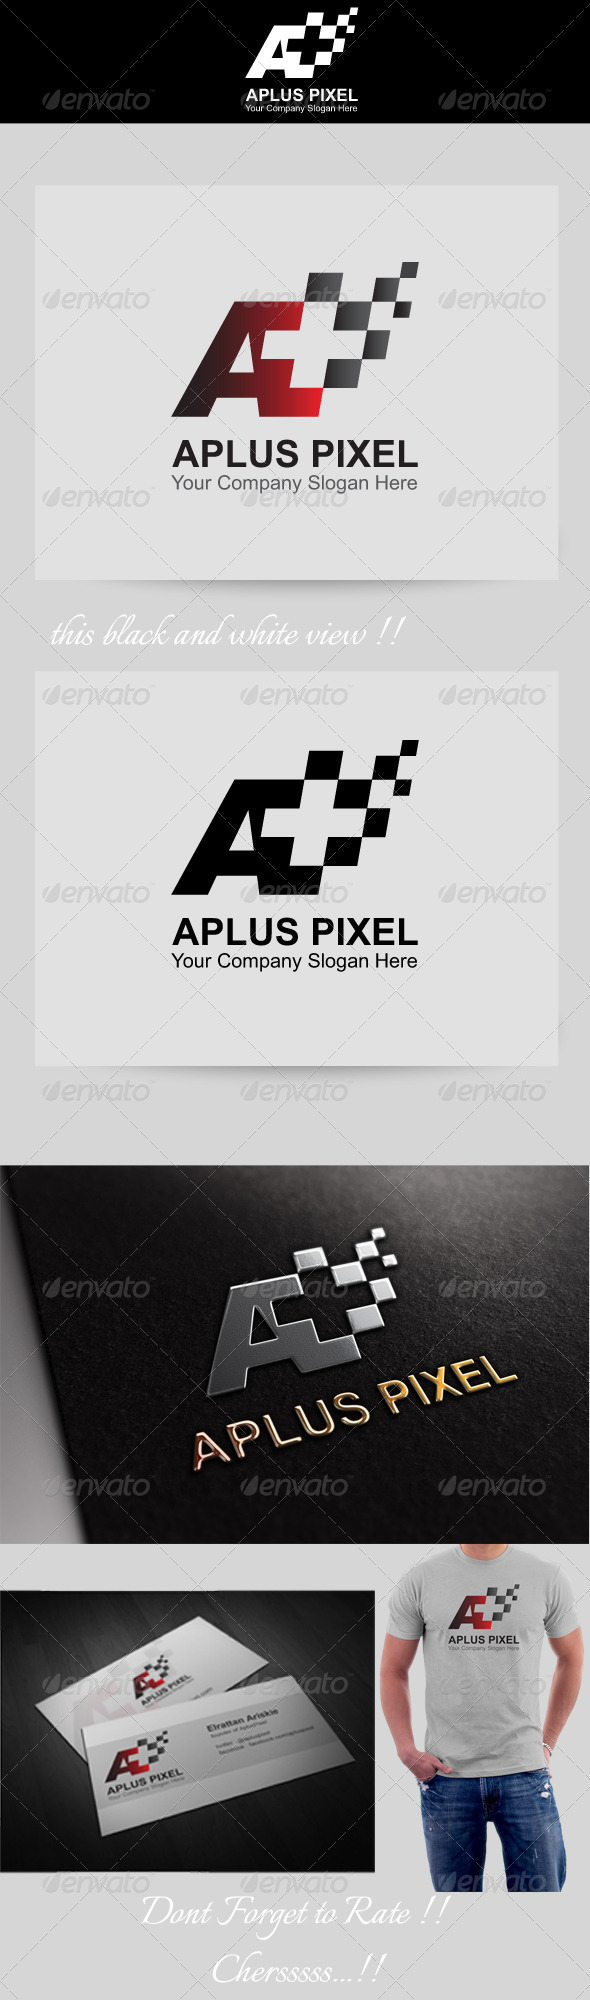 A Plus Pixel / A Plus Race Flag LOGO - Letters Logo Templates